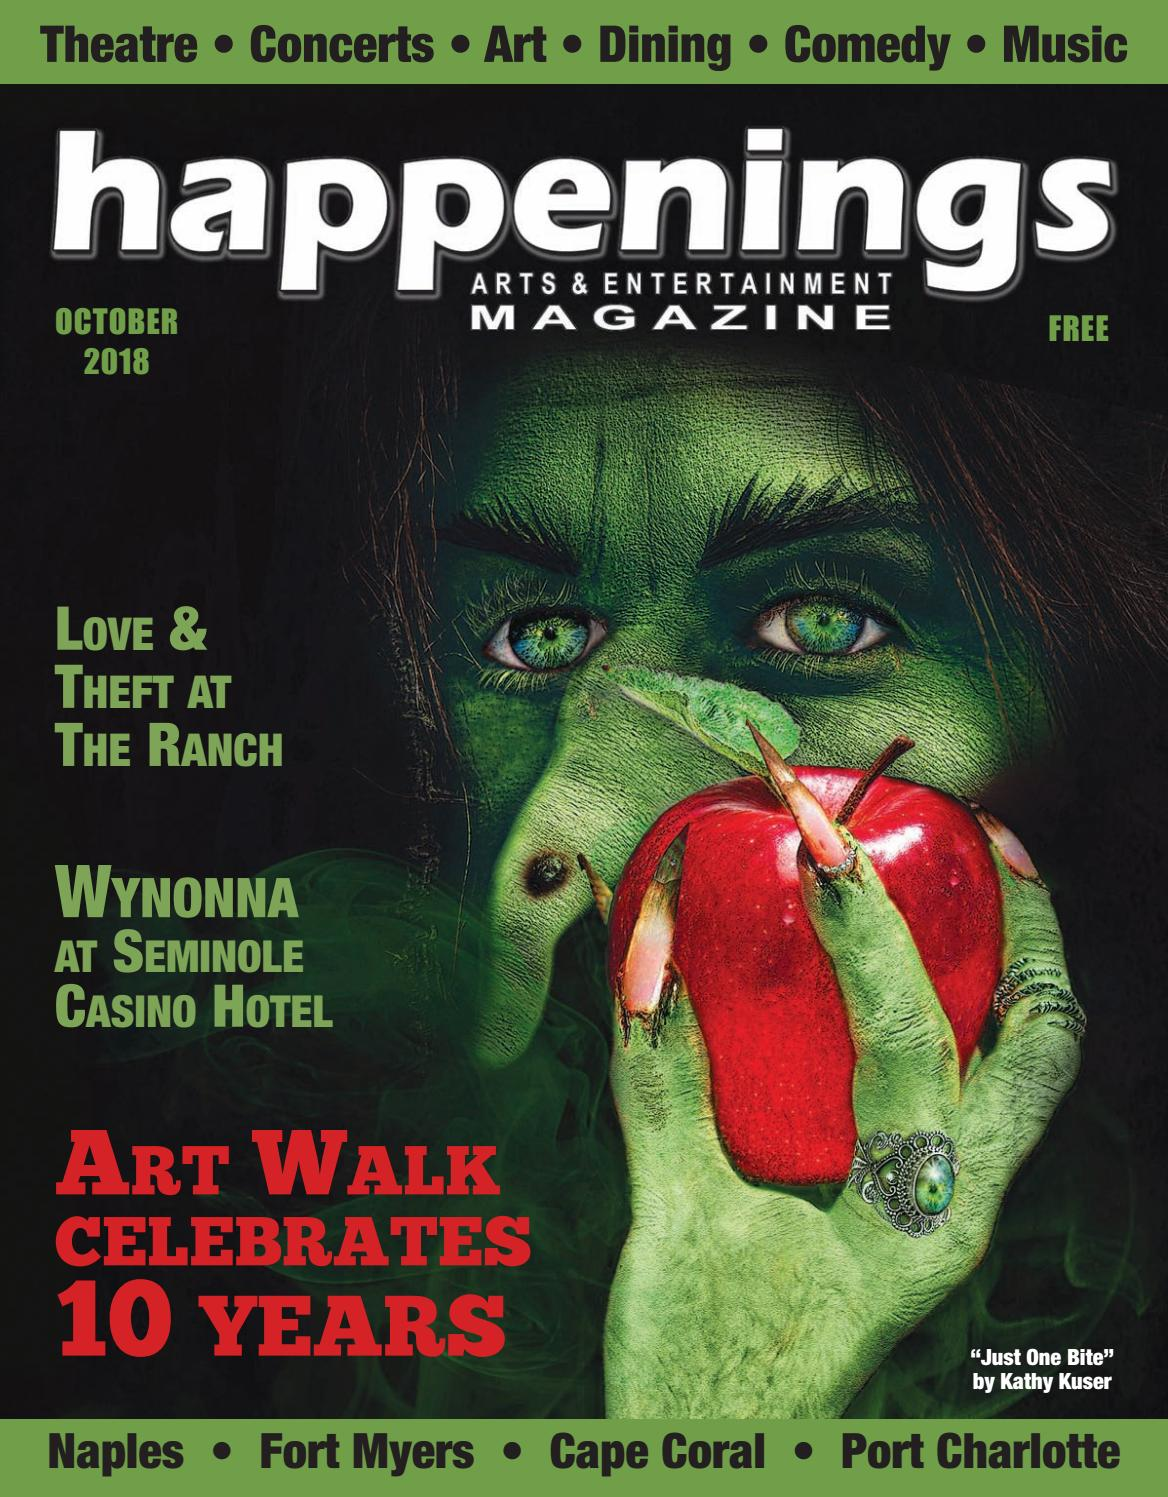 October 2018 Happenings Magazine By Sw Fl Issuu Buy 1 Get Free Monopoly Cosmetic Organizer Tas Treveler